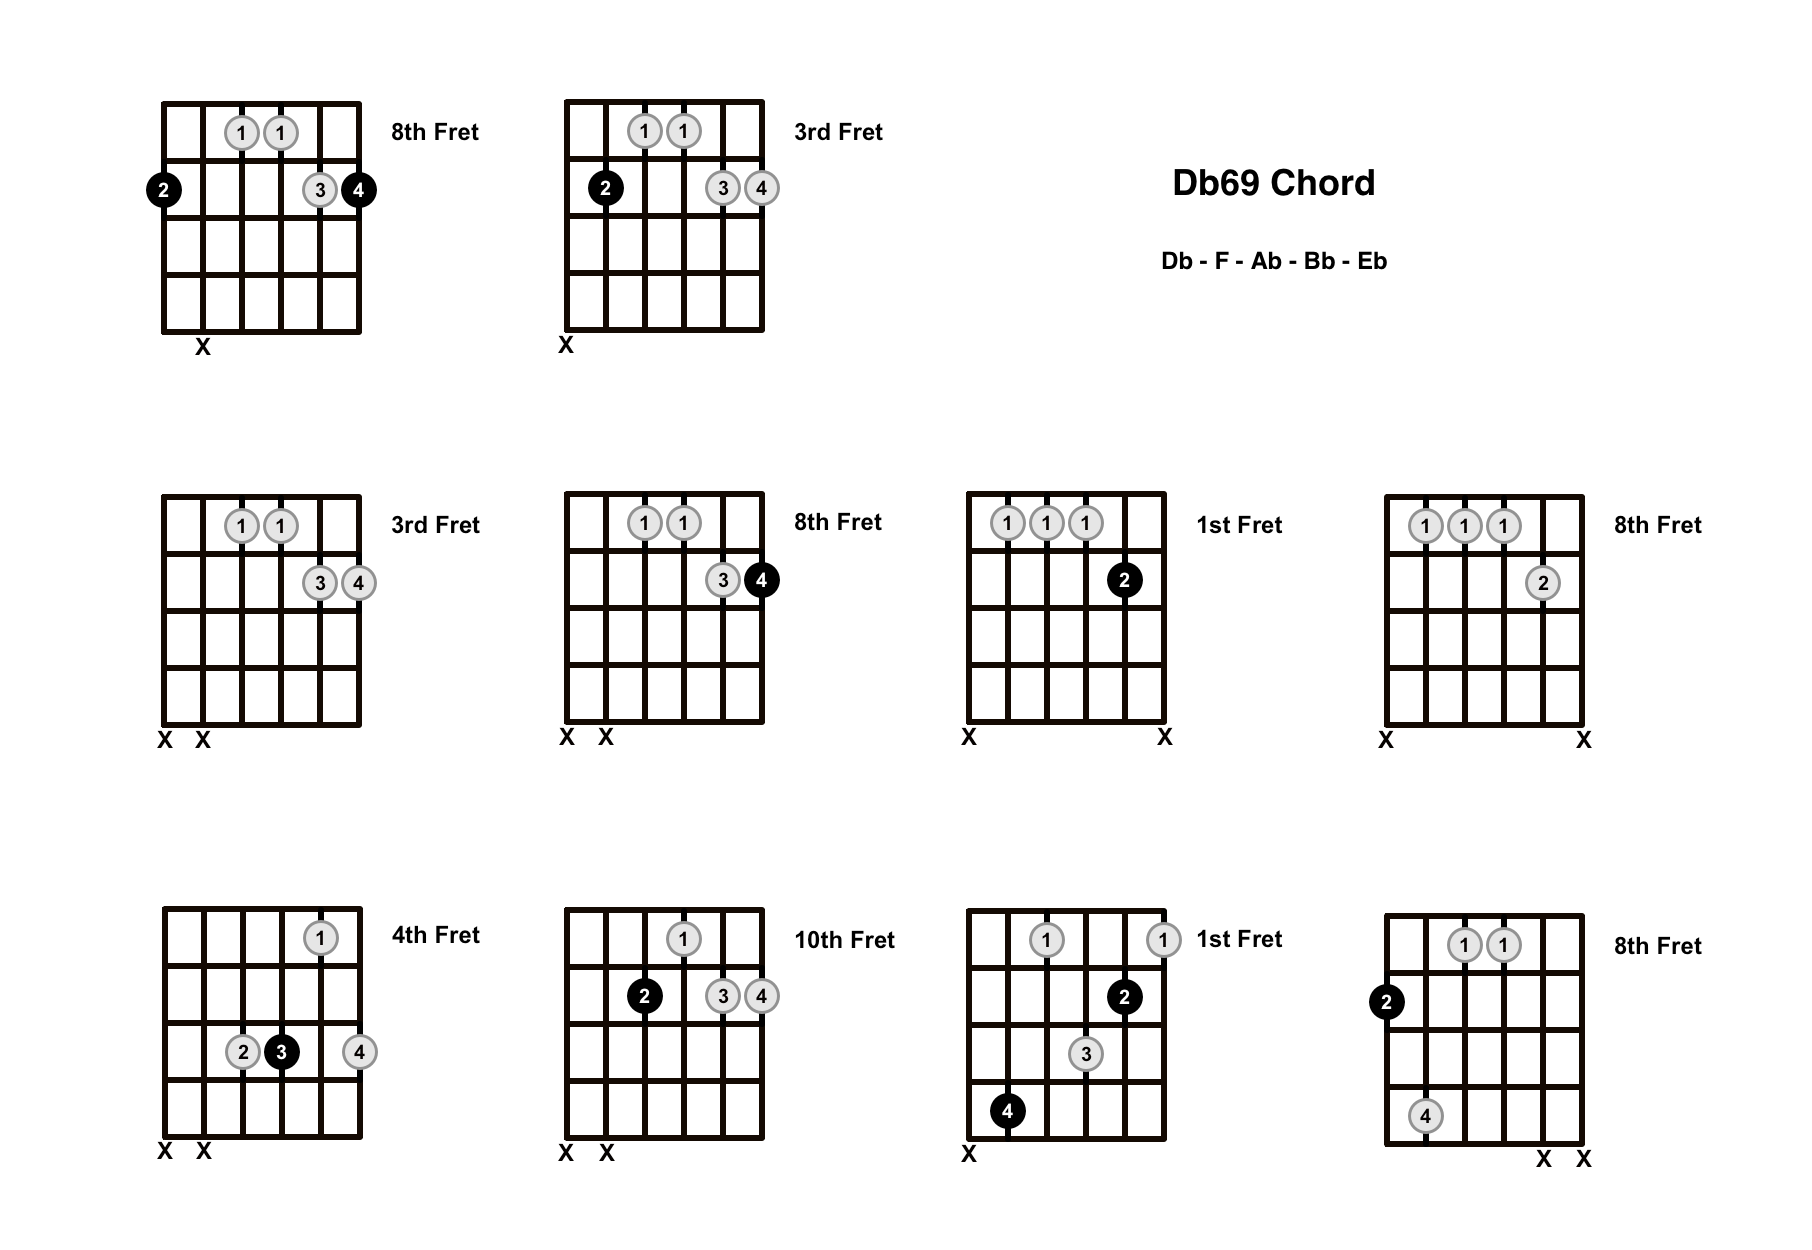 Db69 Chord On The Guitar (D Flat 69) – Diagrams, Finger Positions and Theory